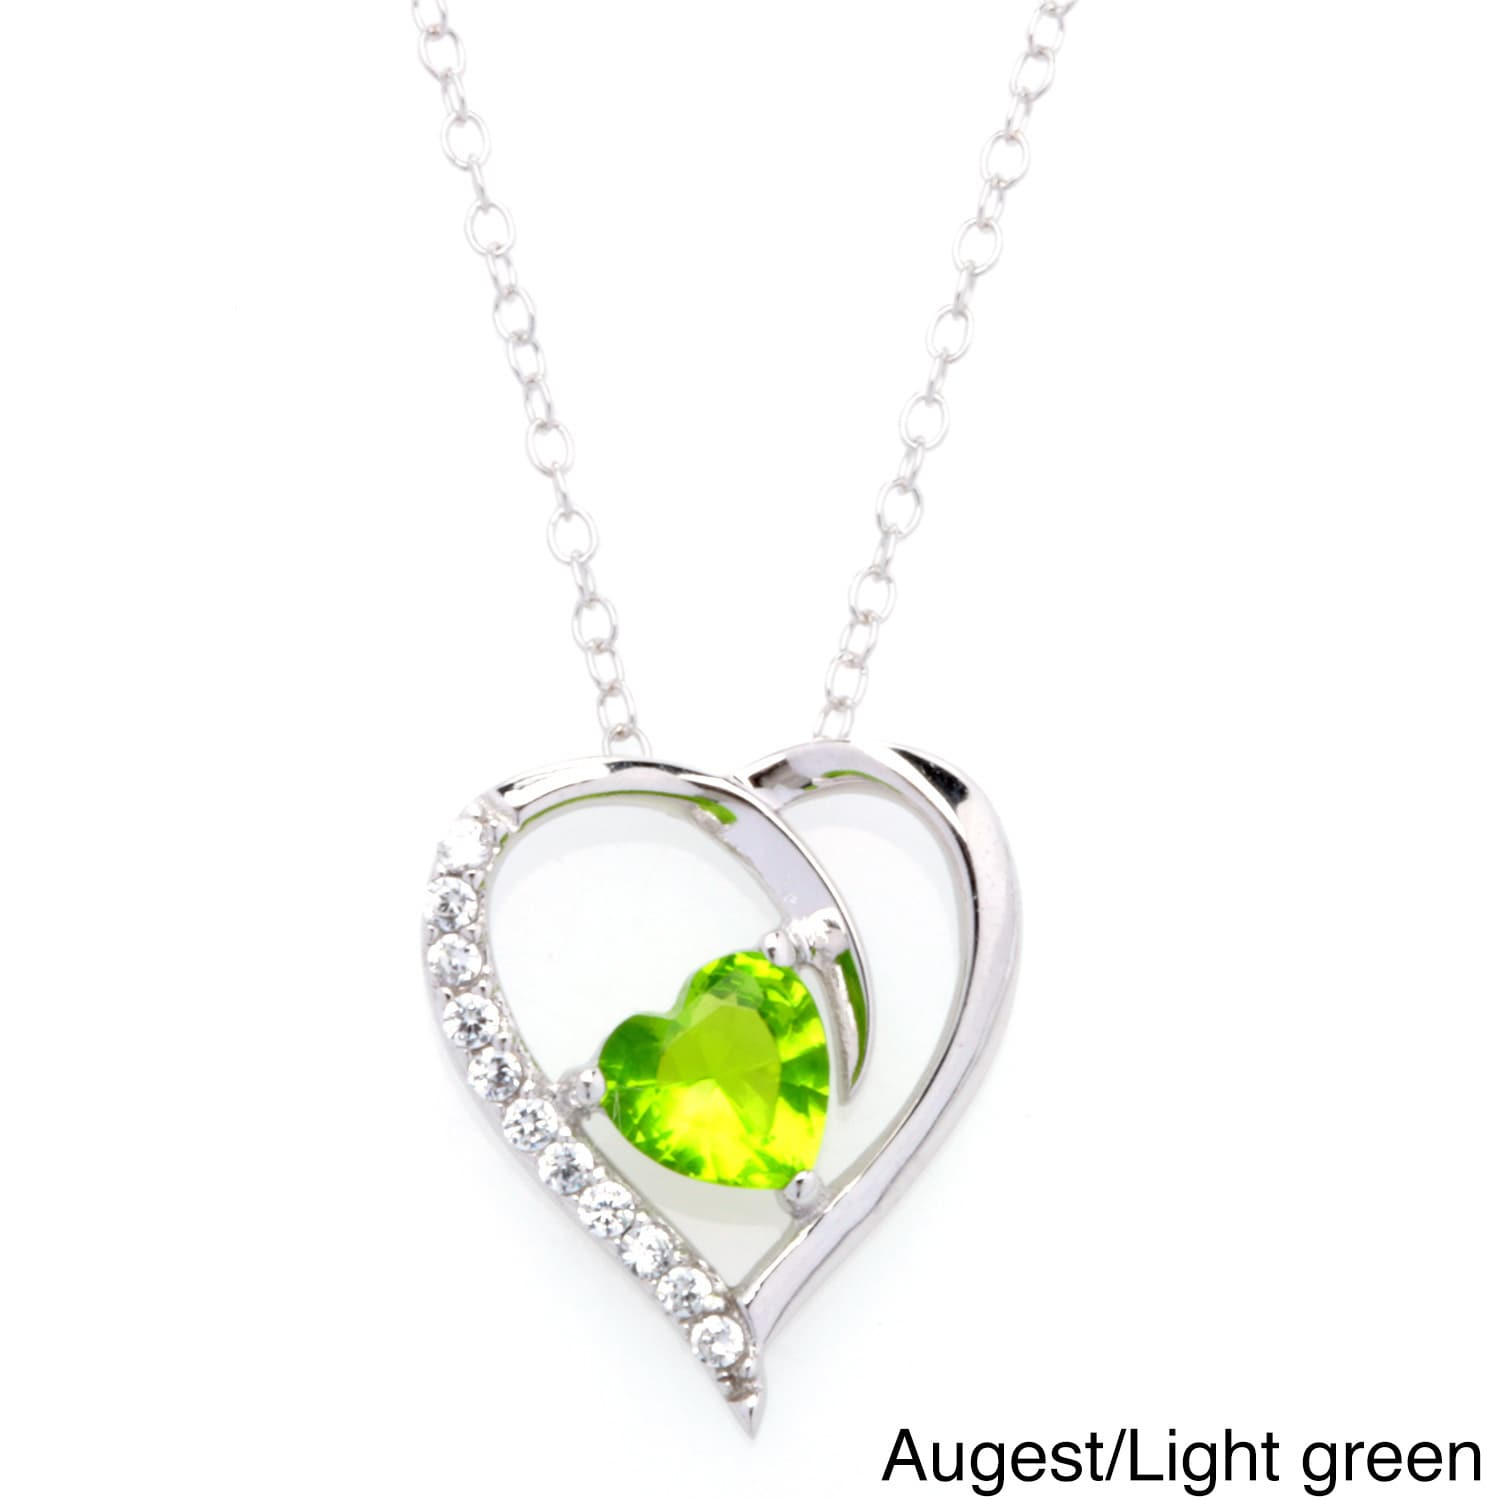 silver birthstone august il with a sterling pendant kuof gemstone oval cut peridot p fullxfull necklace